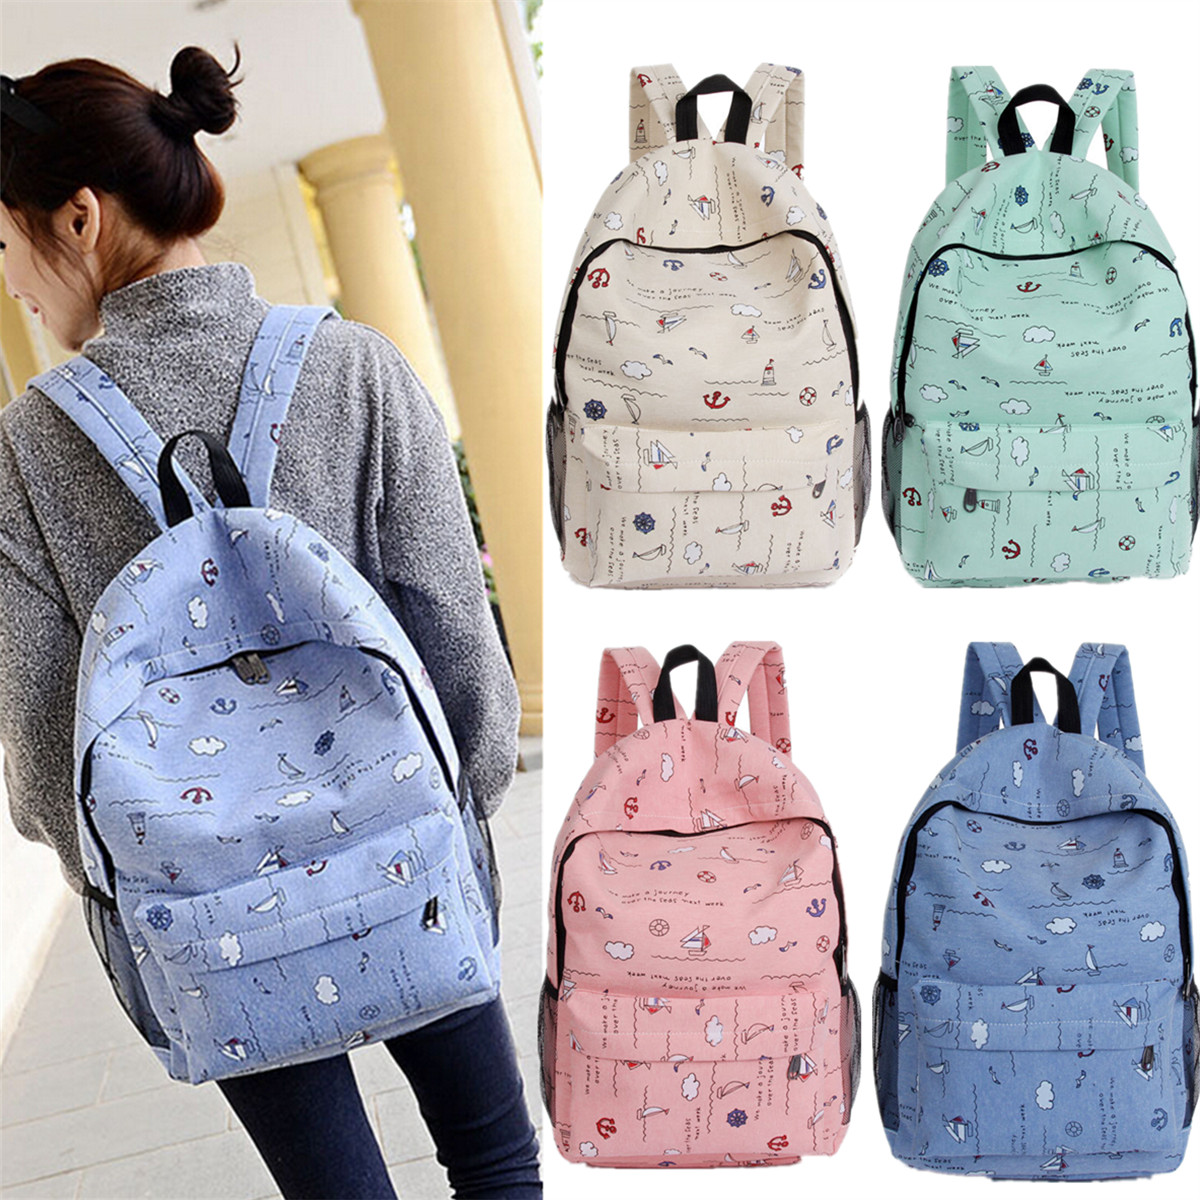 Cute Backpacks For Travel ImQyITbI